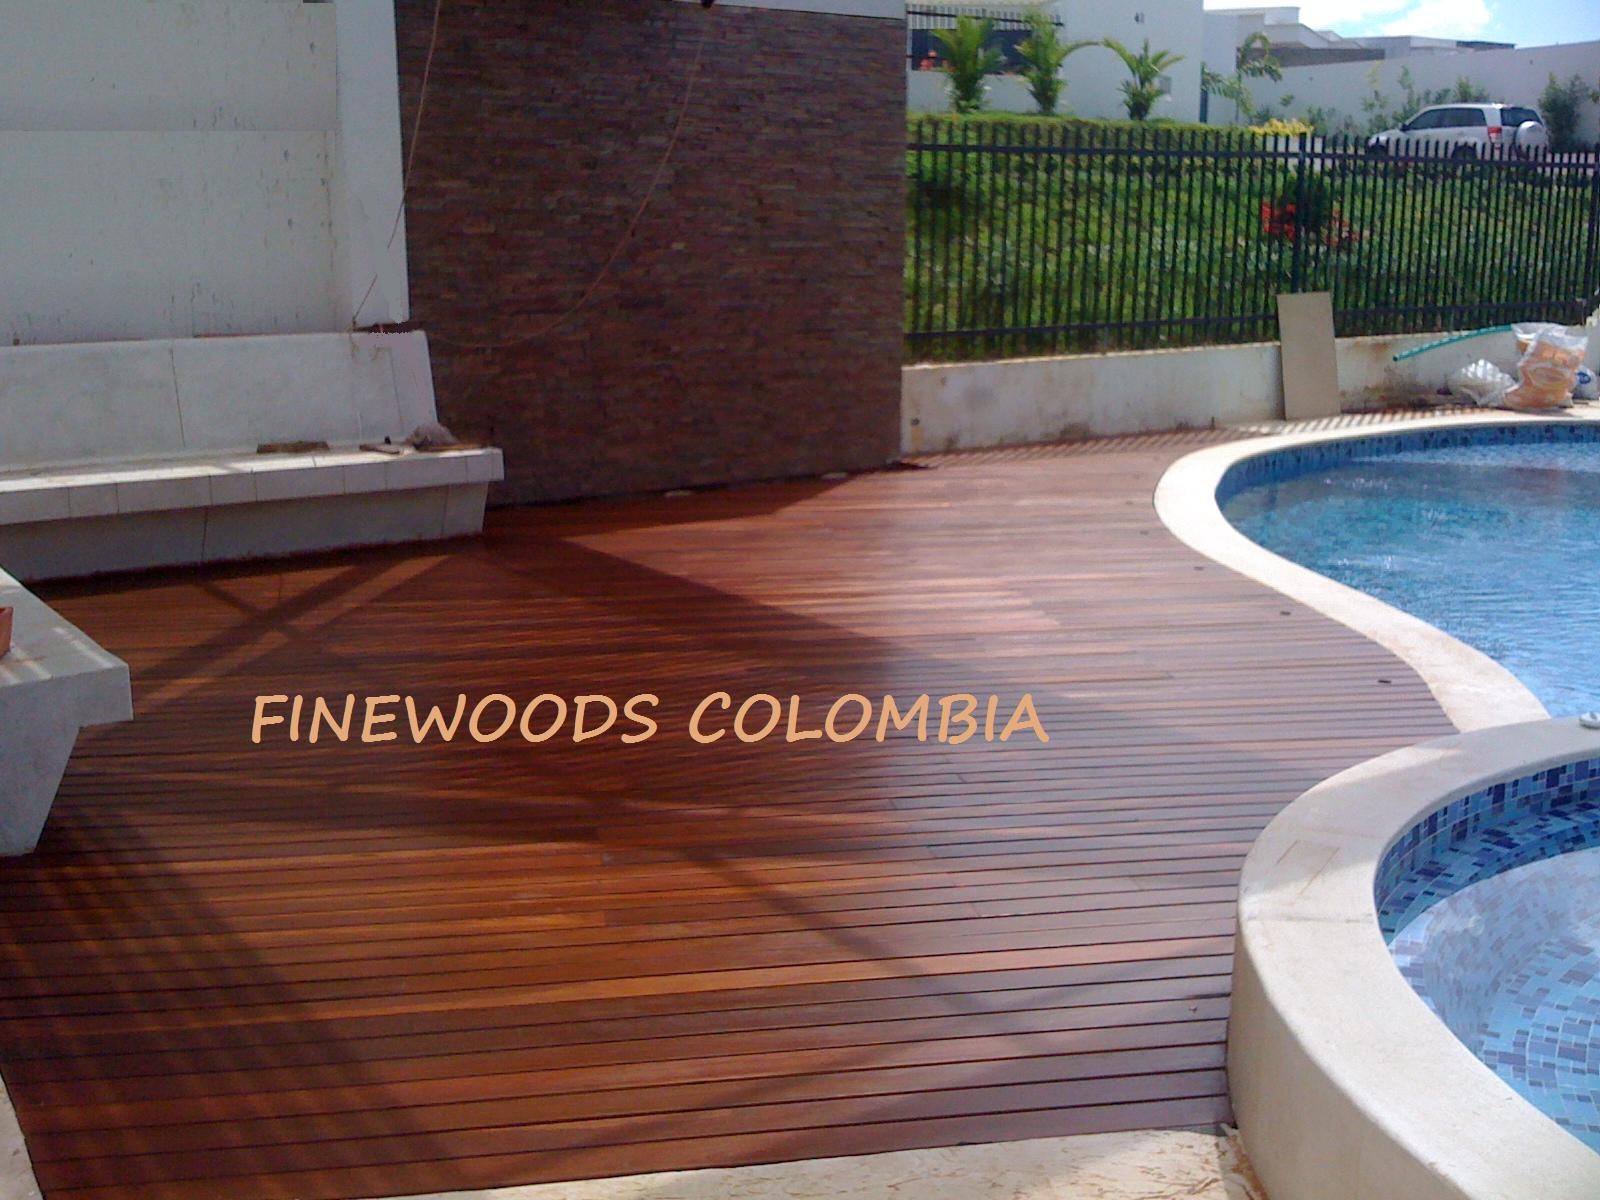 finewoods colombia decks teca cumaru ipe. Black Bedroom Furniture Sets. Home Design Ideas